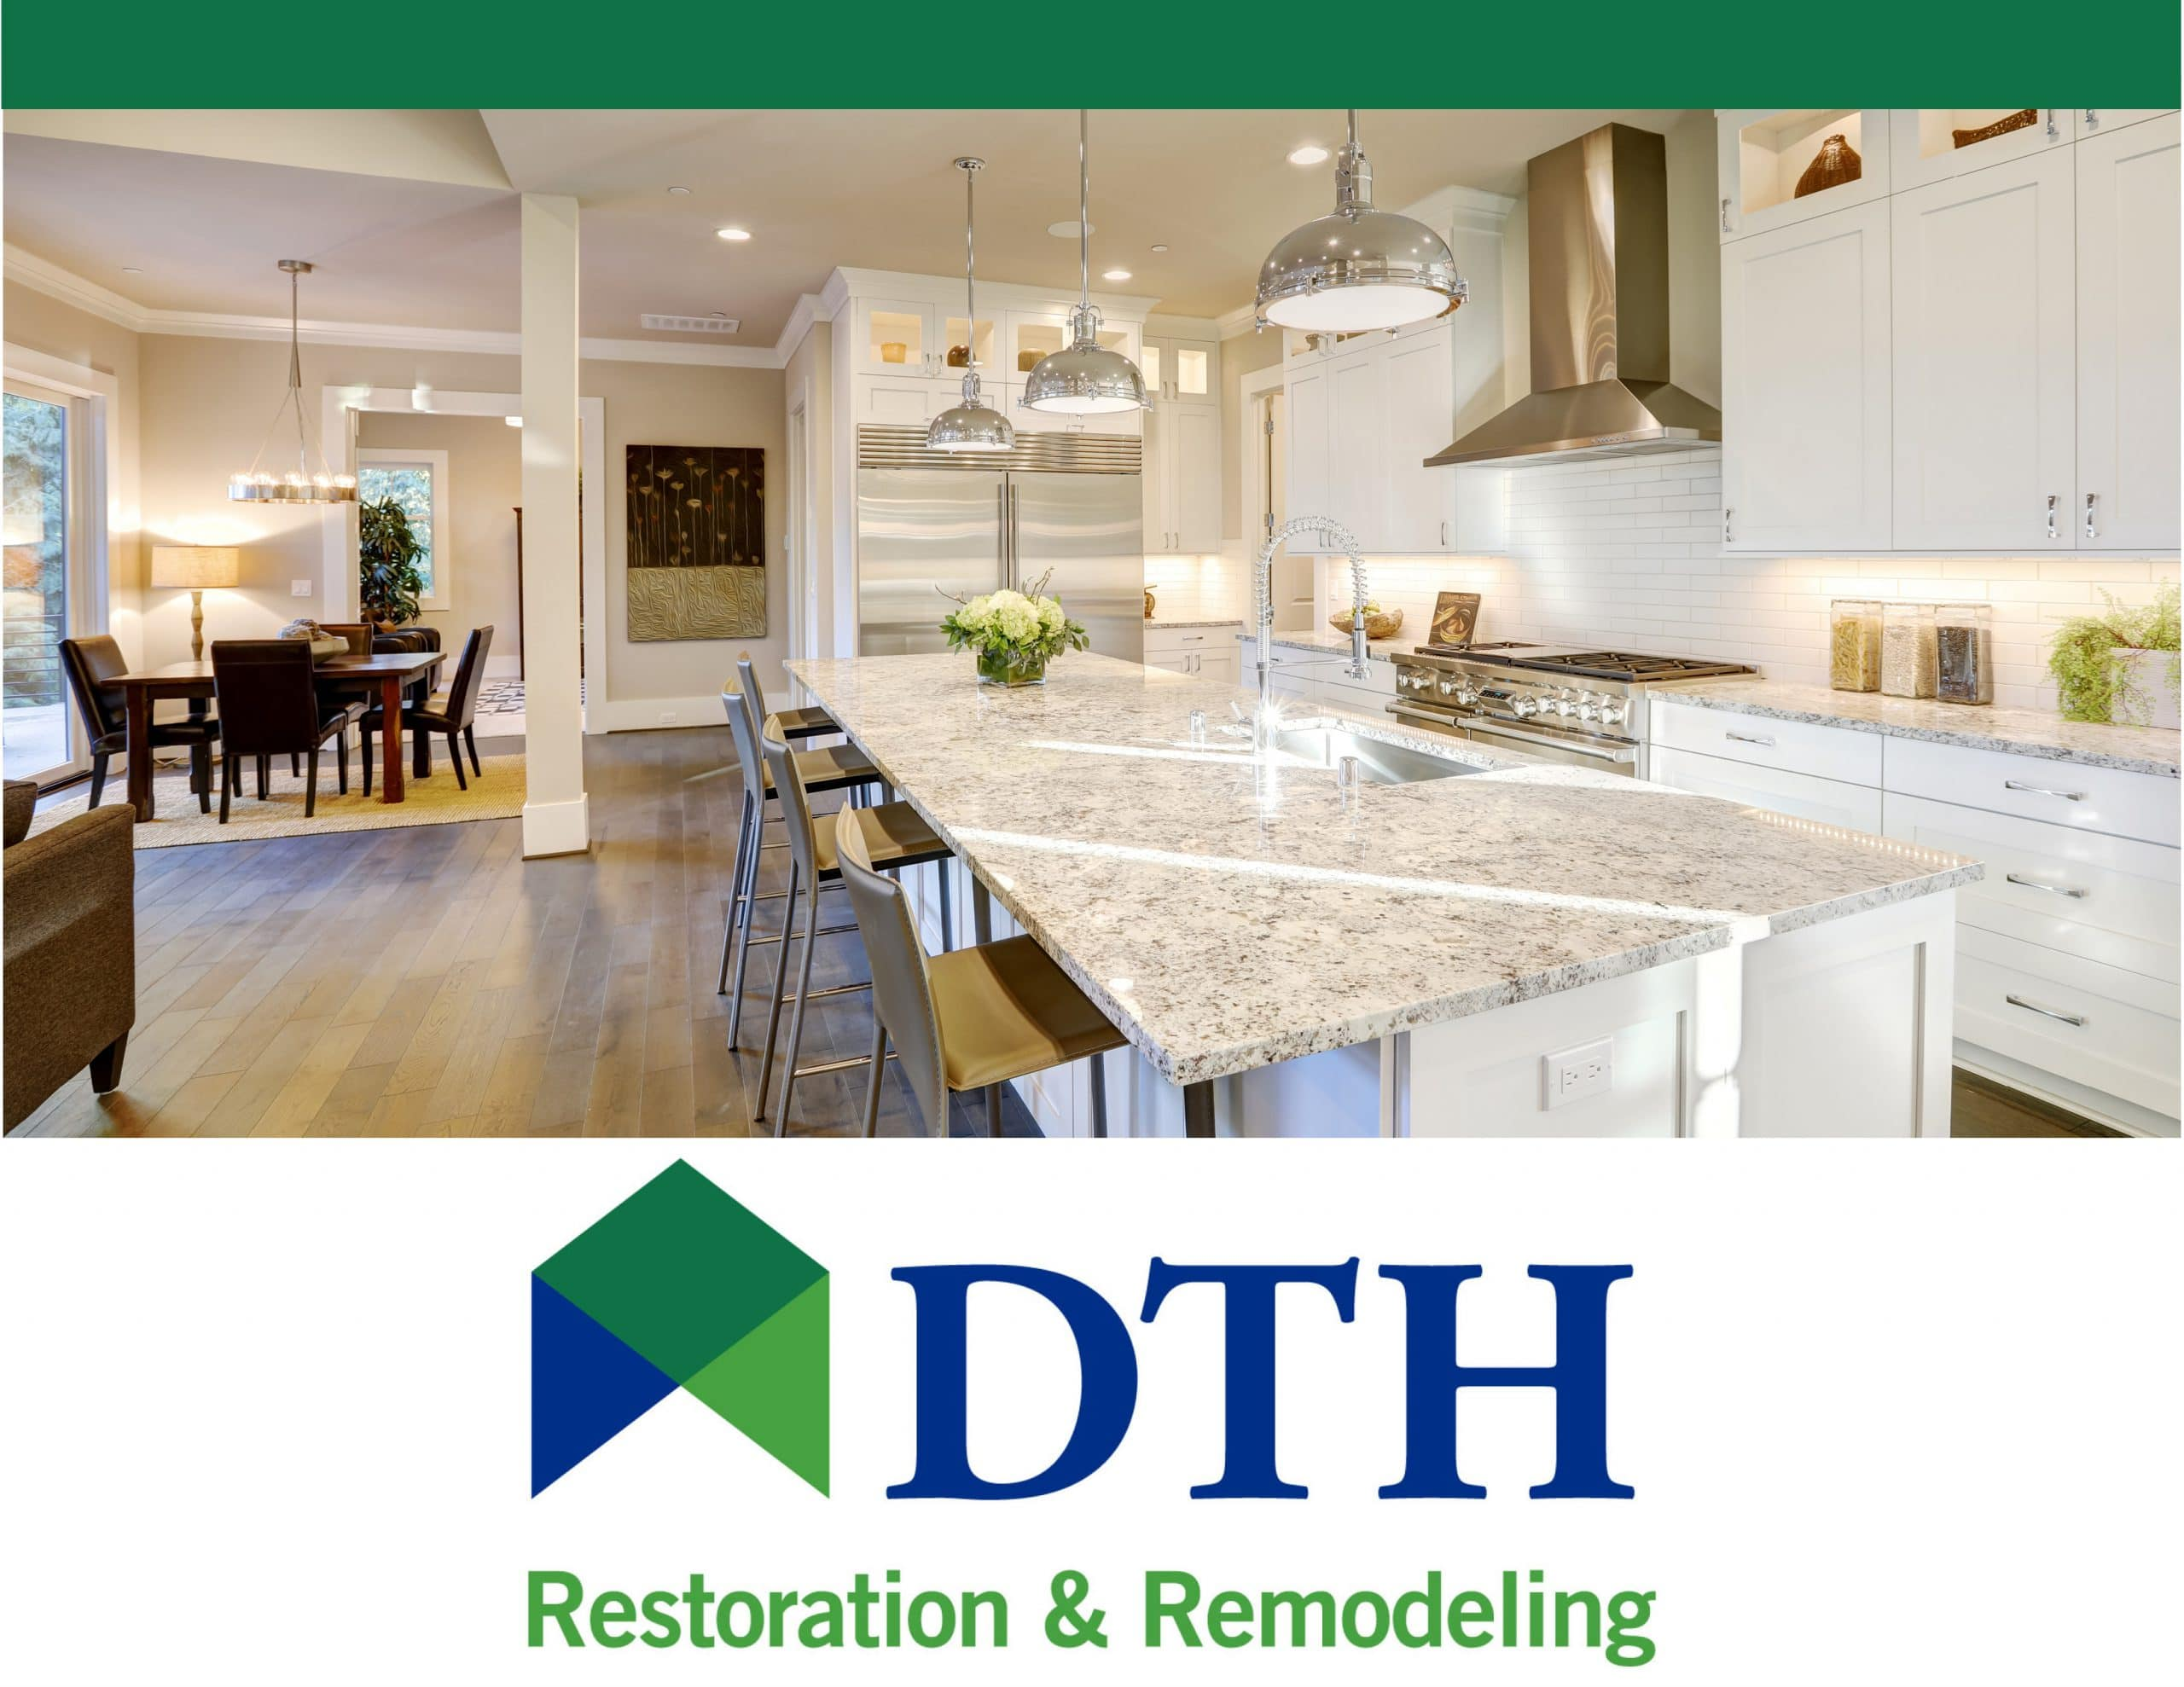 Building, Remodeling, Financing - Three Services from One Source 1